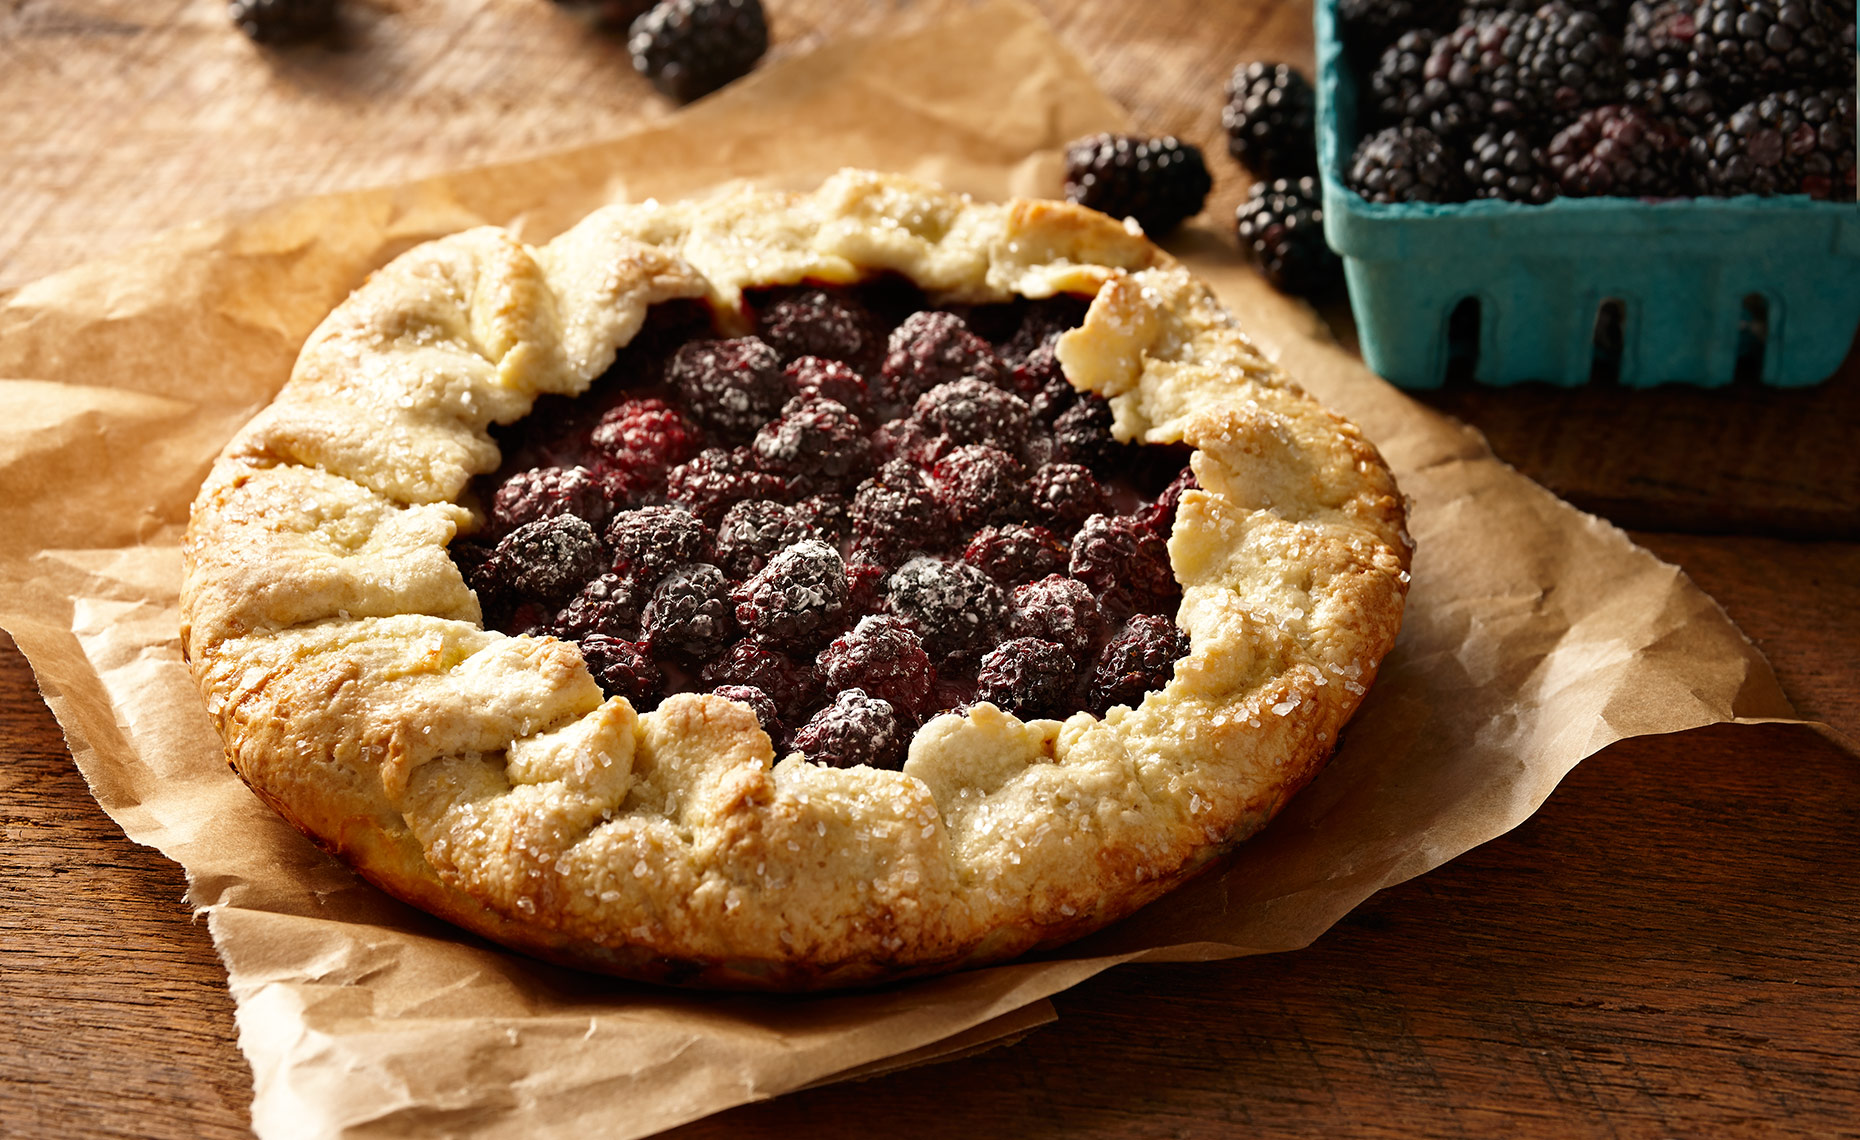 Food Photographer, Bread Photography, Pastry Photography, Dessert Photography | Pohuski Studios,  Rustic Blackberry Pie